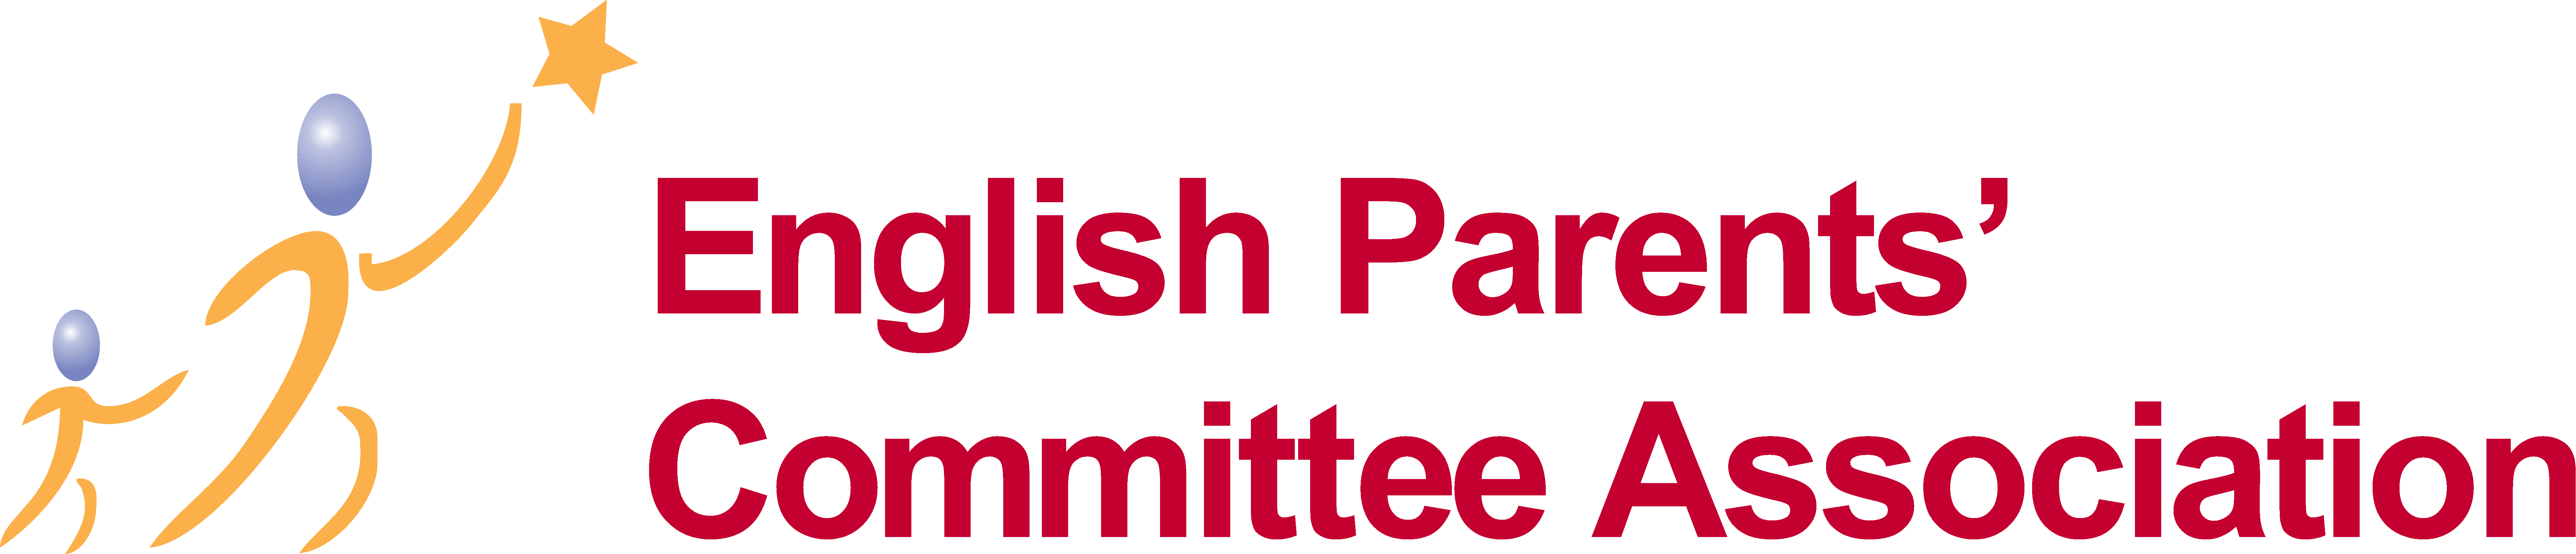 English Parents' Committee Association